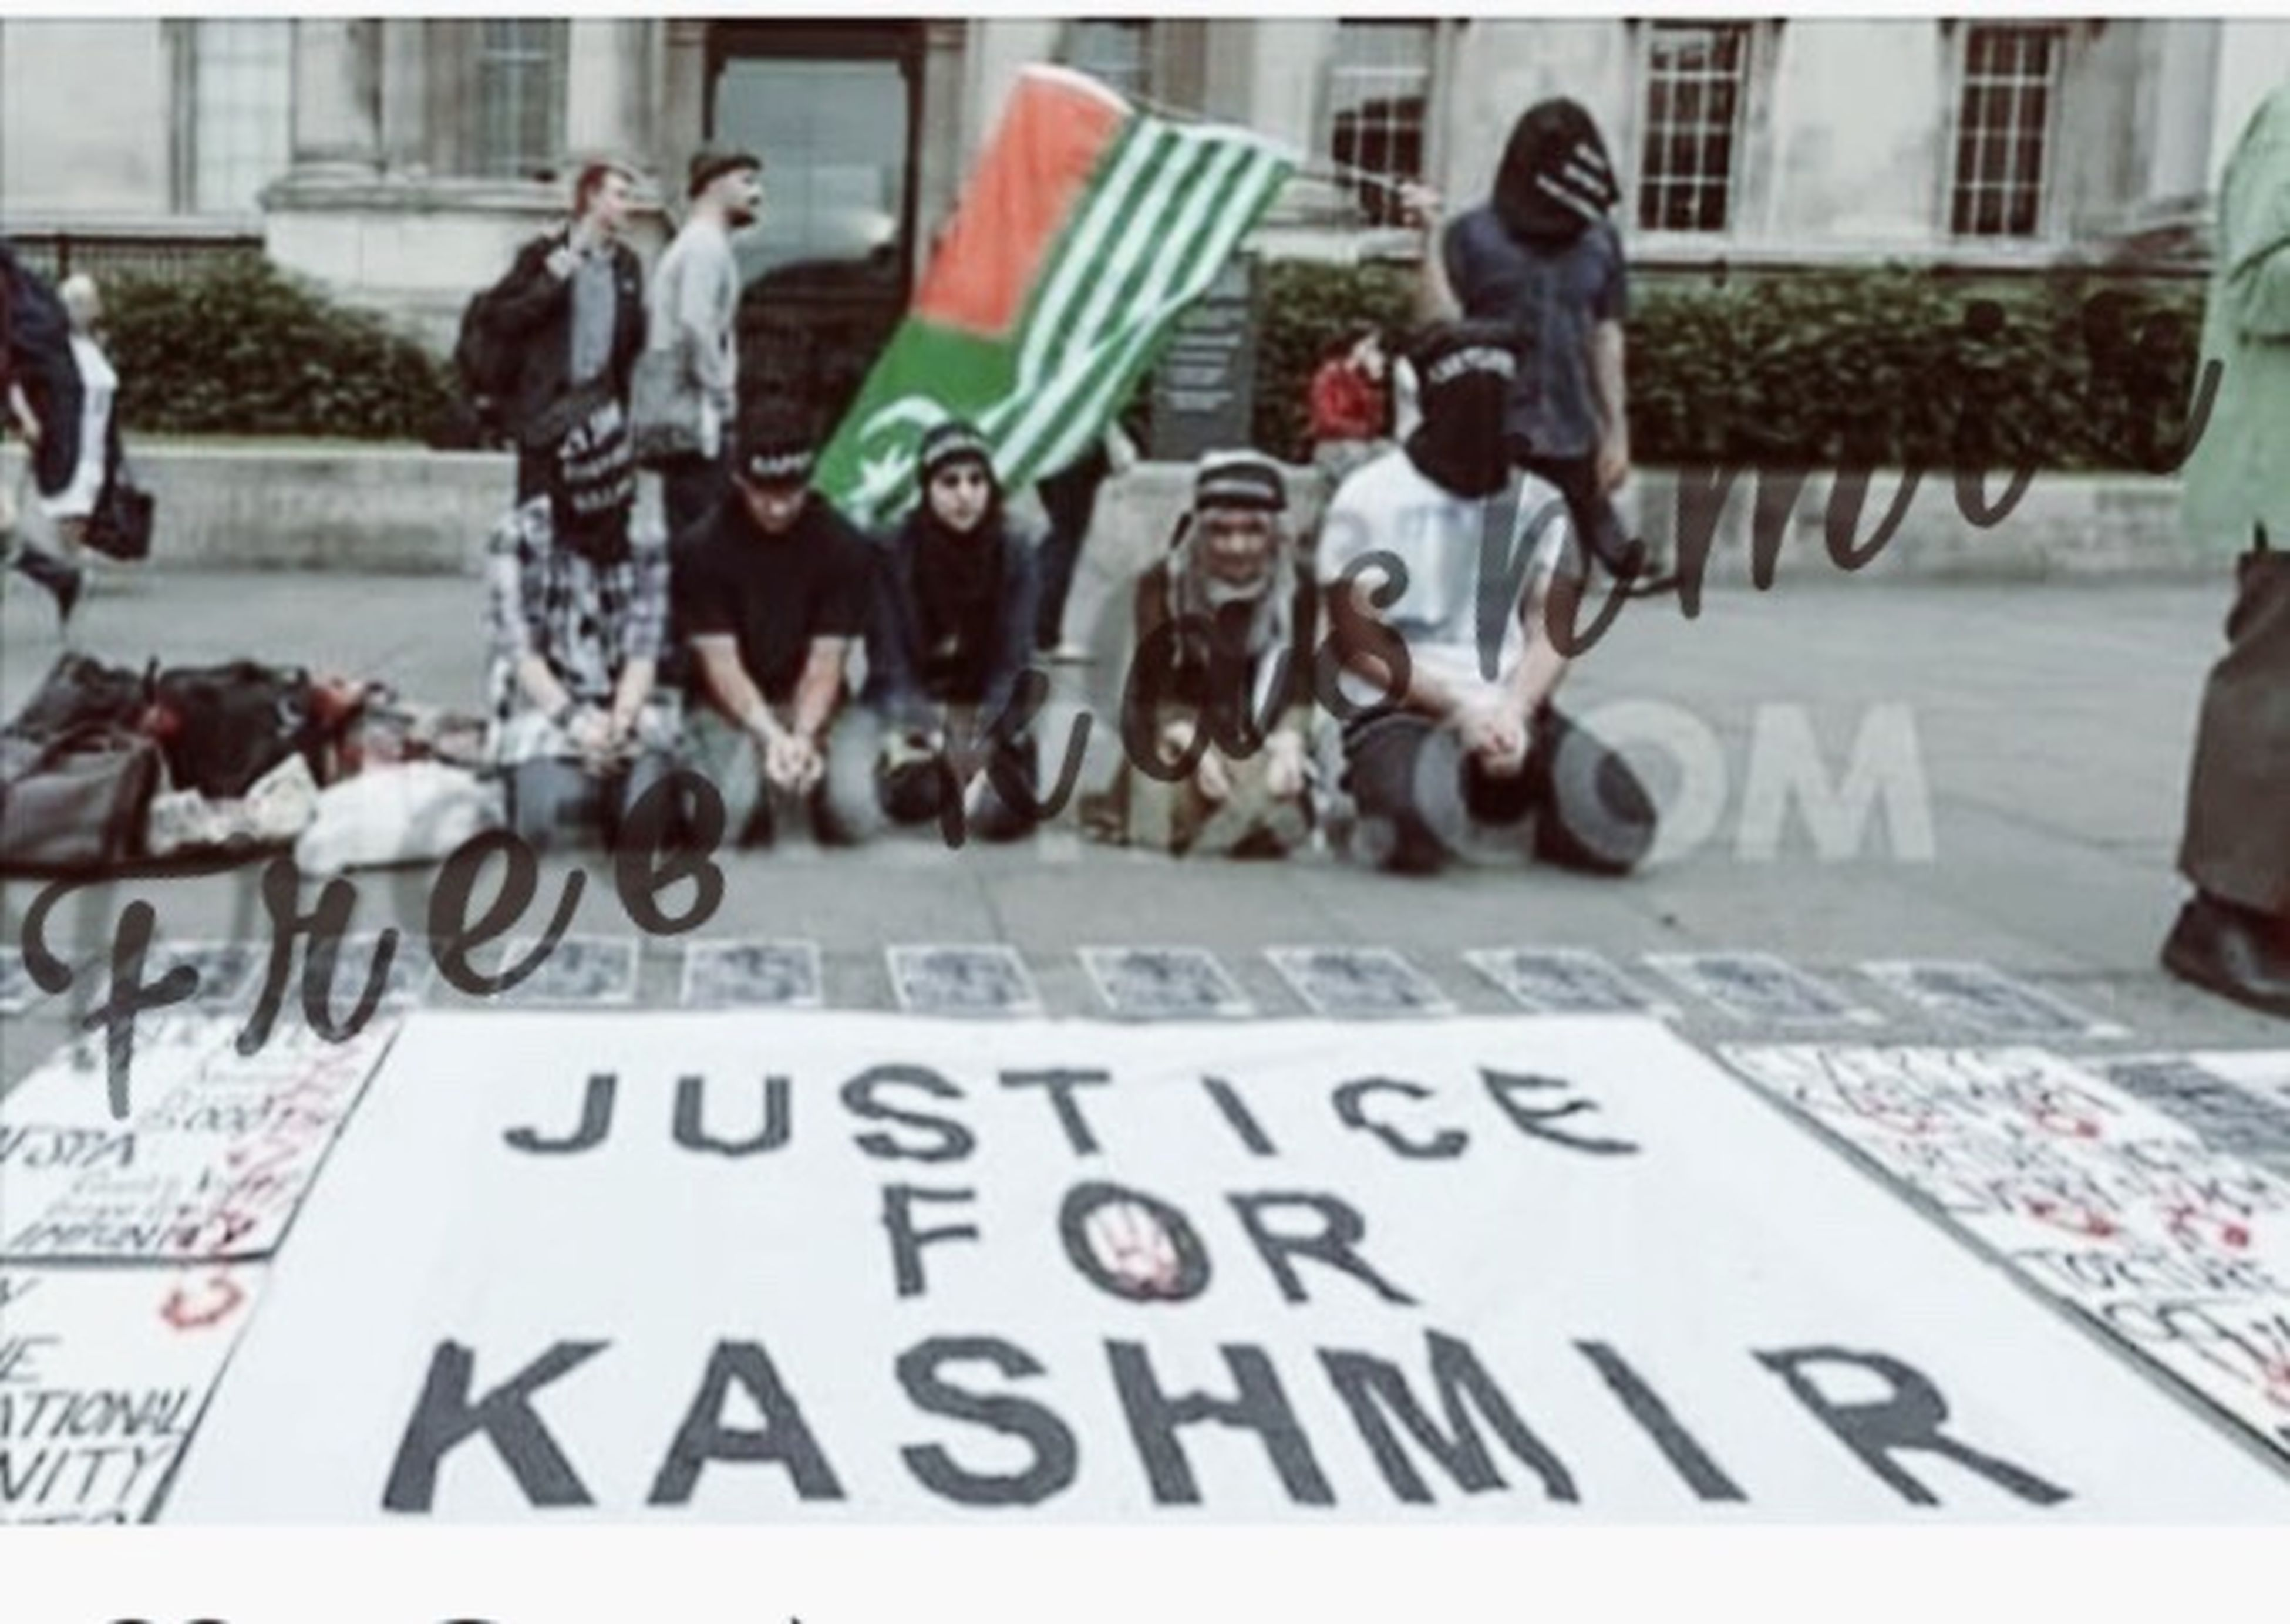 Help me sharing this please Kashmiris Need World Attention there is no eid celebration in kashmir because of indian brutality 😢 Free Kashmir u can whatsapp me also +919797256105 my facebook id is awleen.1